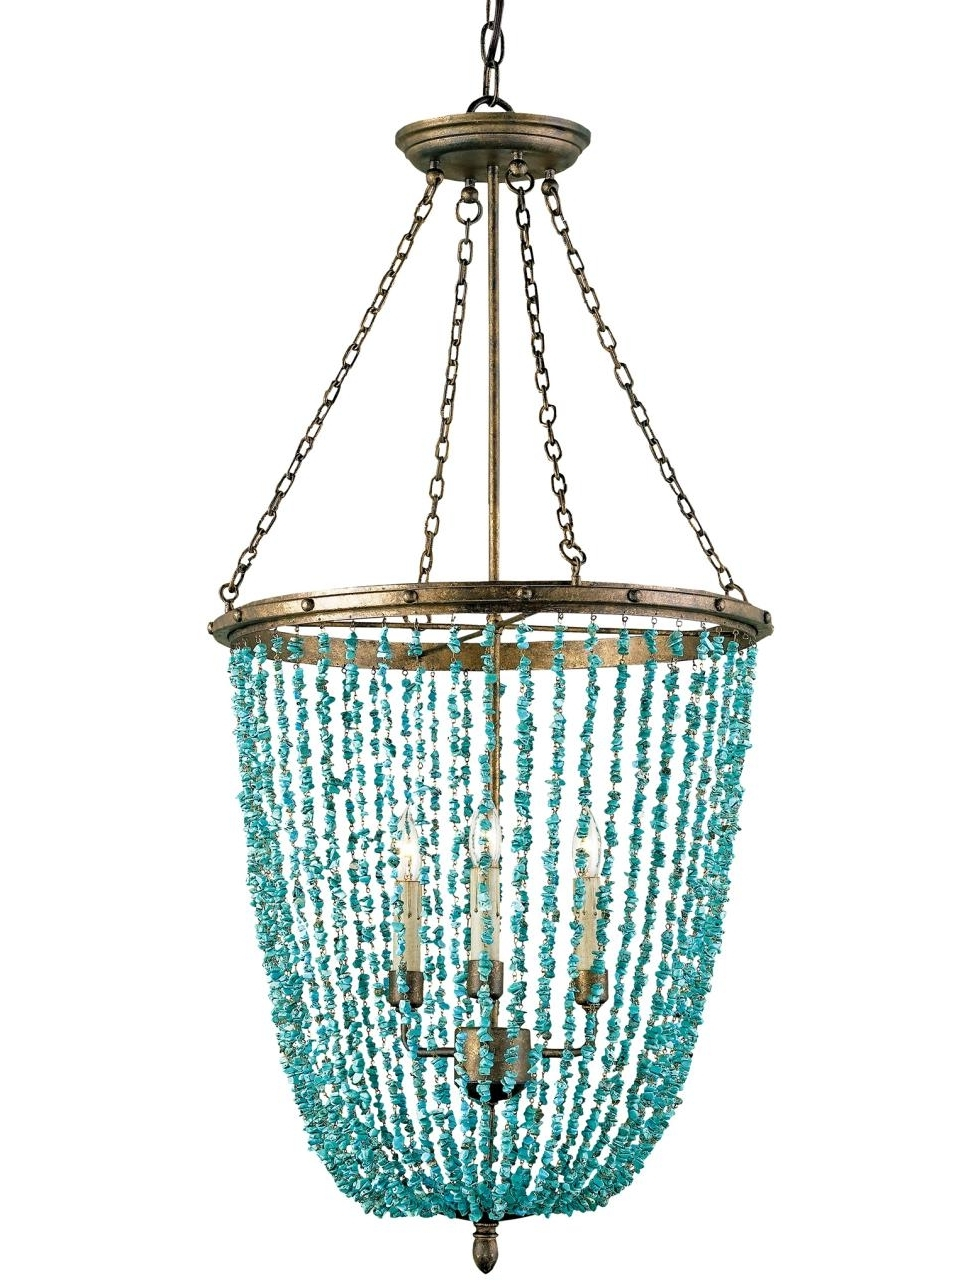 Turquoise Color Chandeliers Inside Most Up To Date Turquoise Chandelier (View 8 of 15)